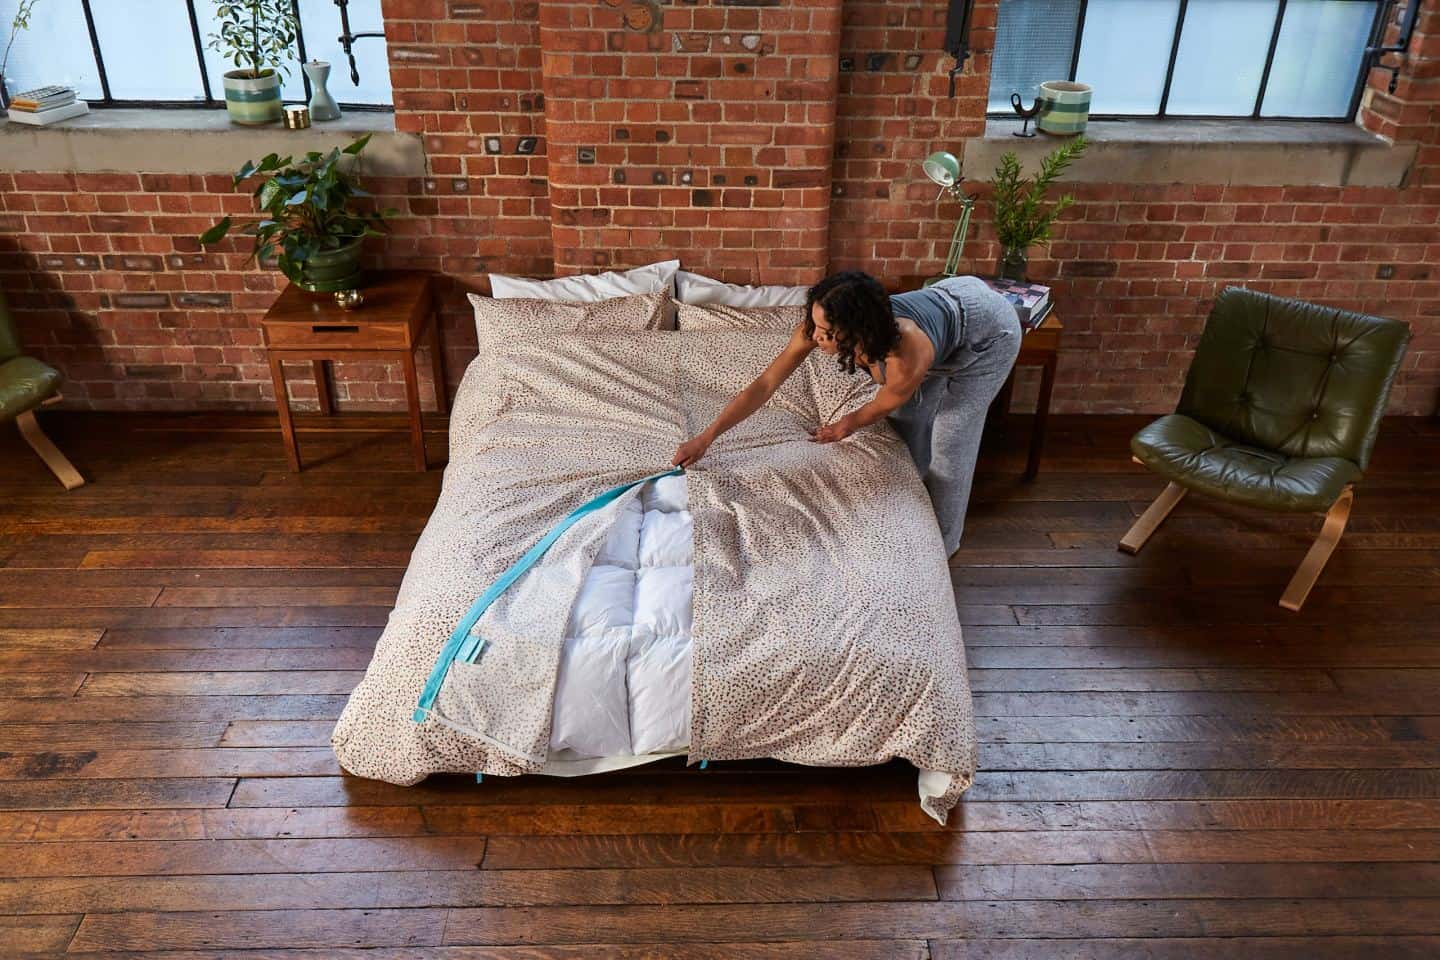 Koa revolutionary duvet cover shown in an industrial loft bedroom. A women zips up the central zip. The easy way to change a duvet cover